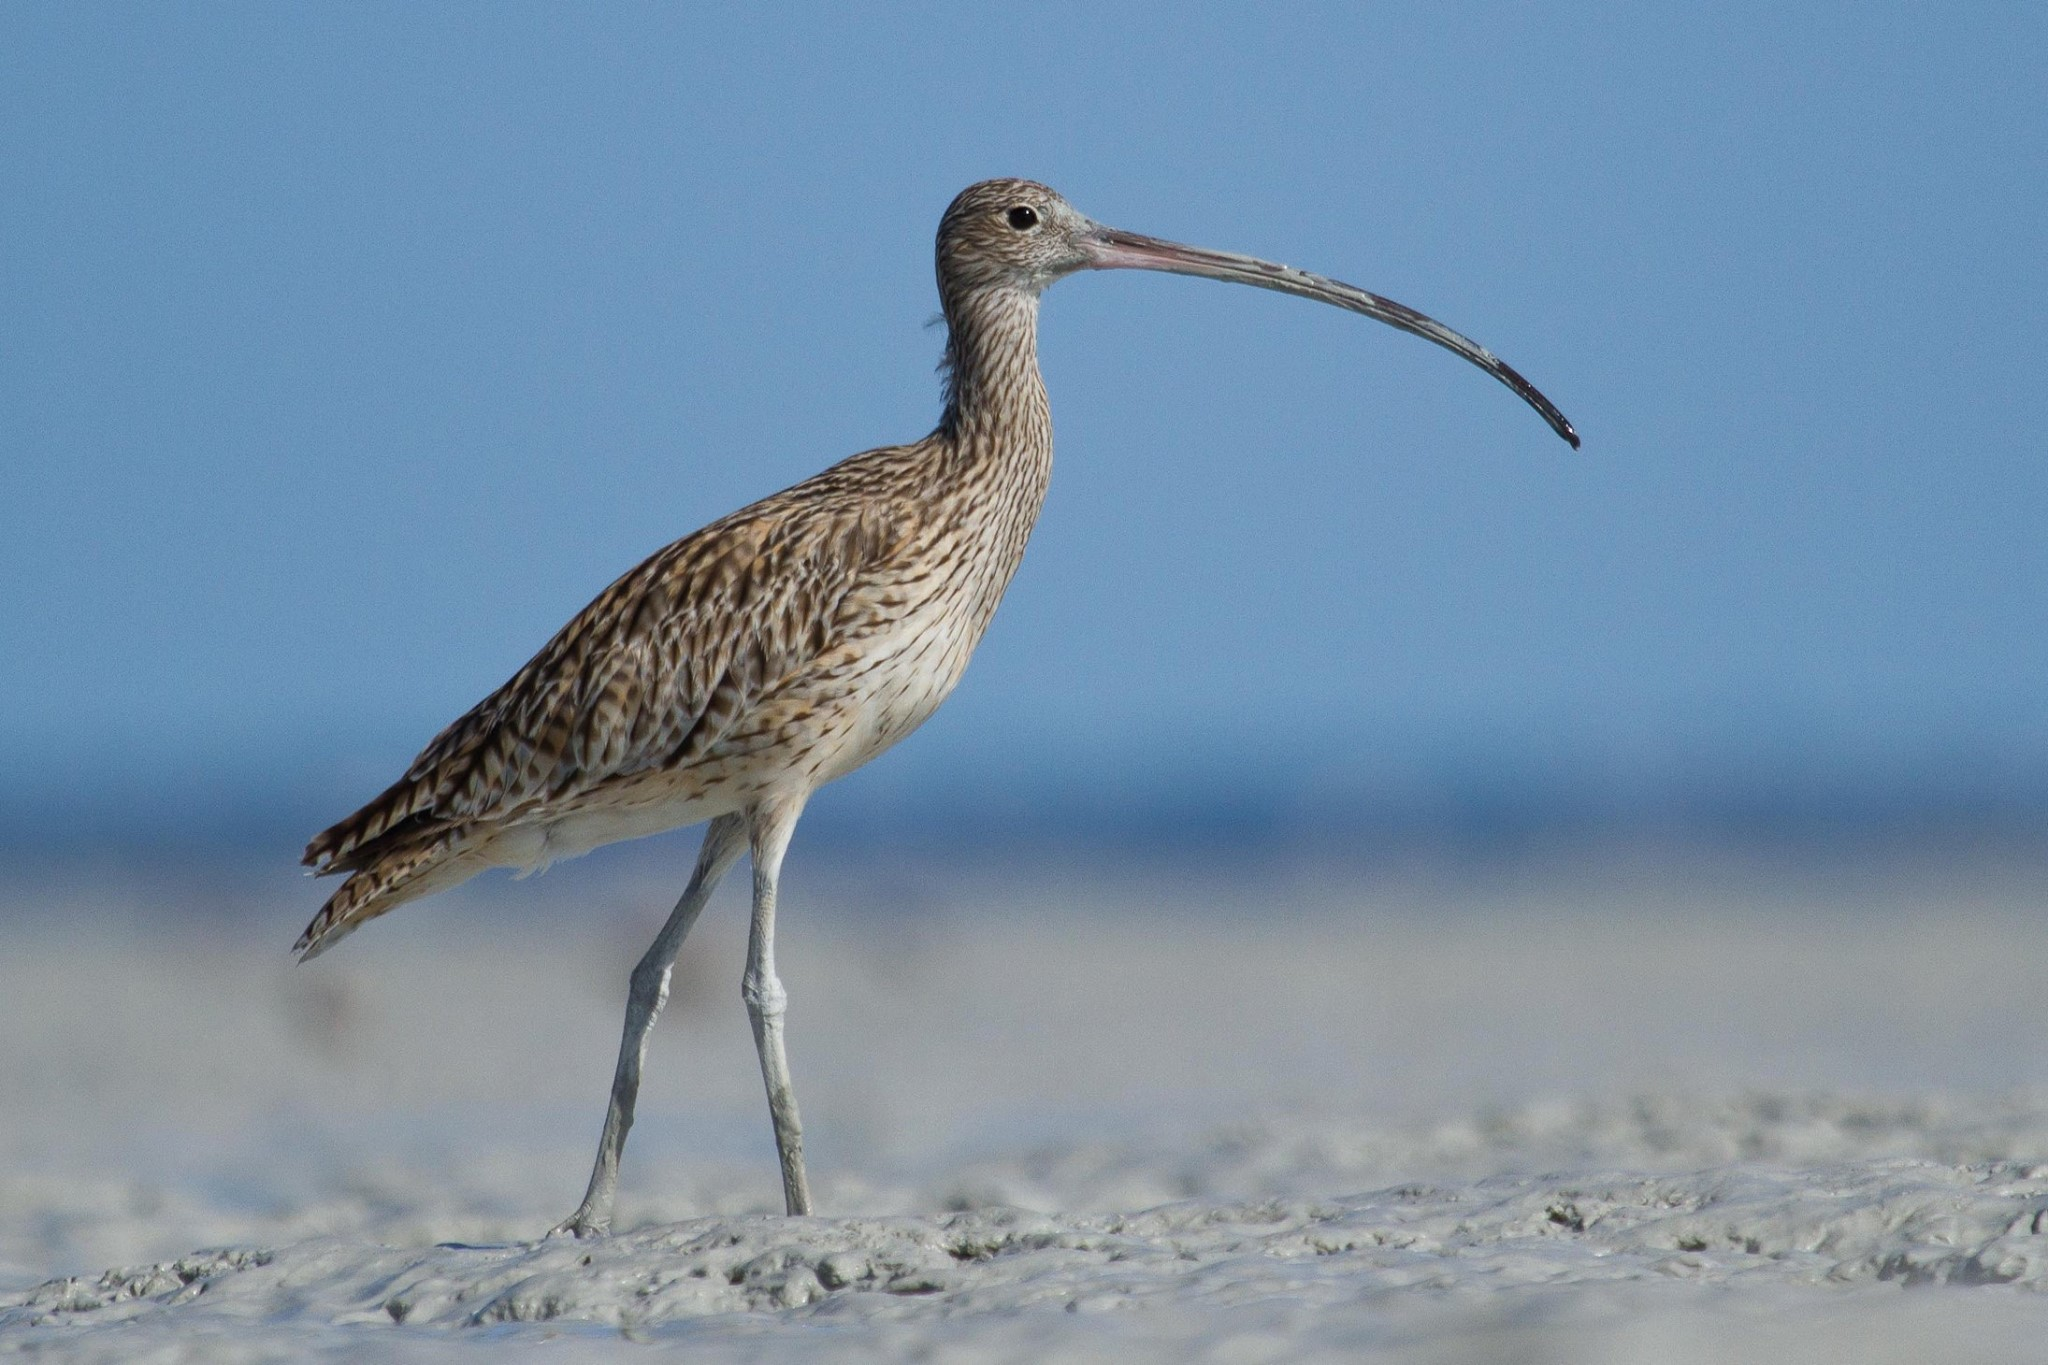 Eastern Curlew not migrating (photo: Nigel Jackett)